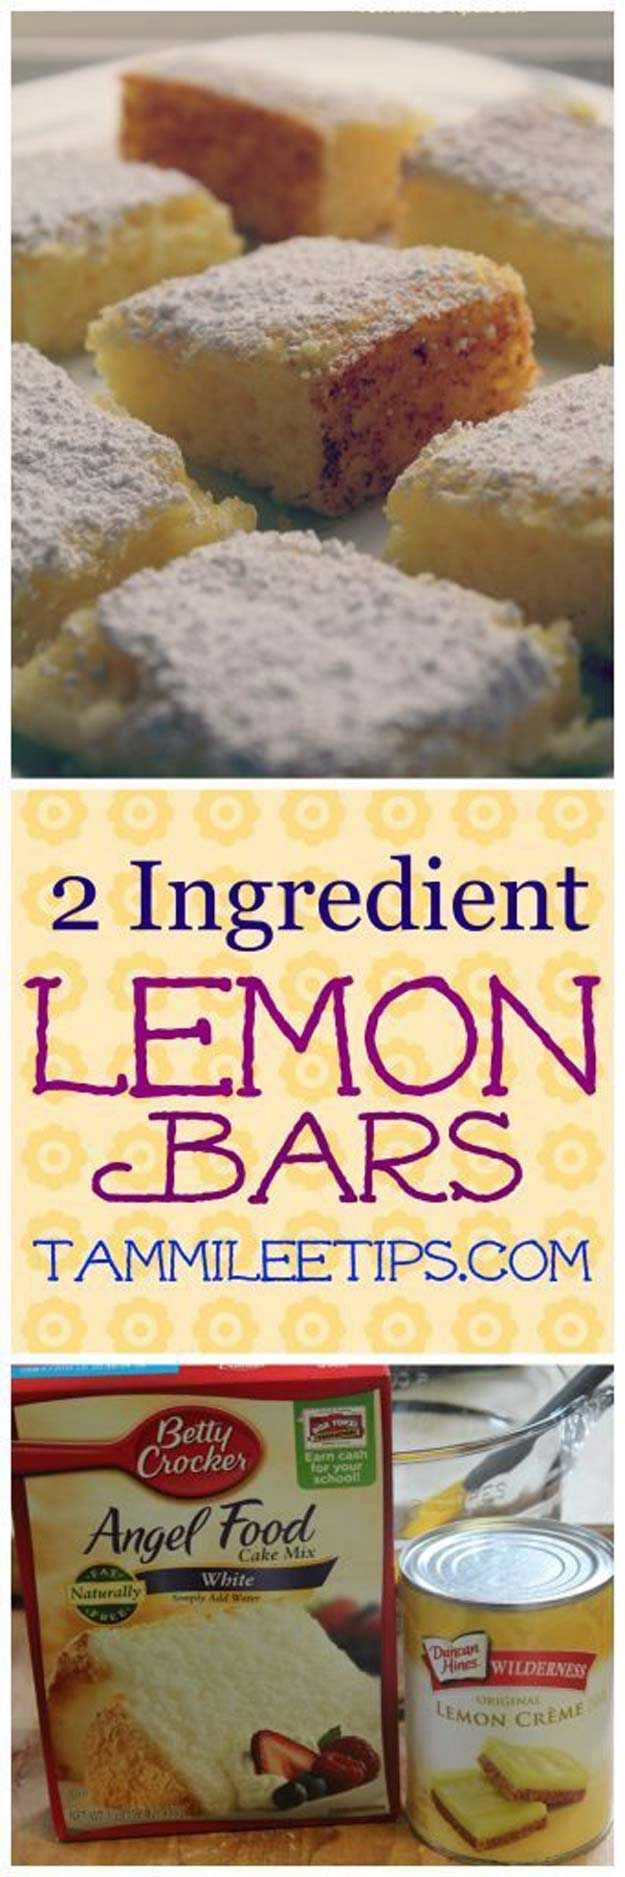 Healthy Desserts To Try Tonight - Two Ingredient Lemon Bars Recipes - Easy And Yummy DIY Health Desserts Under 100 Calories To Try Tonight. No Bake Desserts From Scratch You Can Make In A Mug With No Sugar And Easy To Eat Clean. Recipes For Chocolate Desserts For One And Weight Watchers Ideas For Summer, For Fall, And For Winter. Quick Paleo And Low Carb Cookies And Desserts With Fruit You Can Make At Home By Yourself That Are No Guilt, Guilt Free, And Healthy. Loose Weight And Get A Flat…